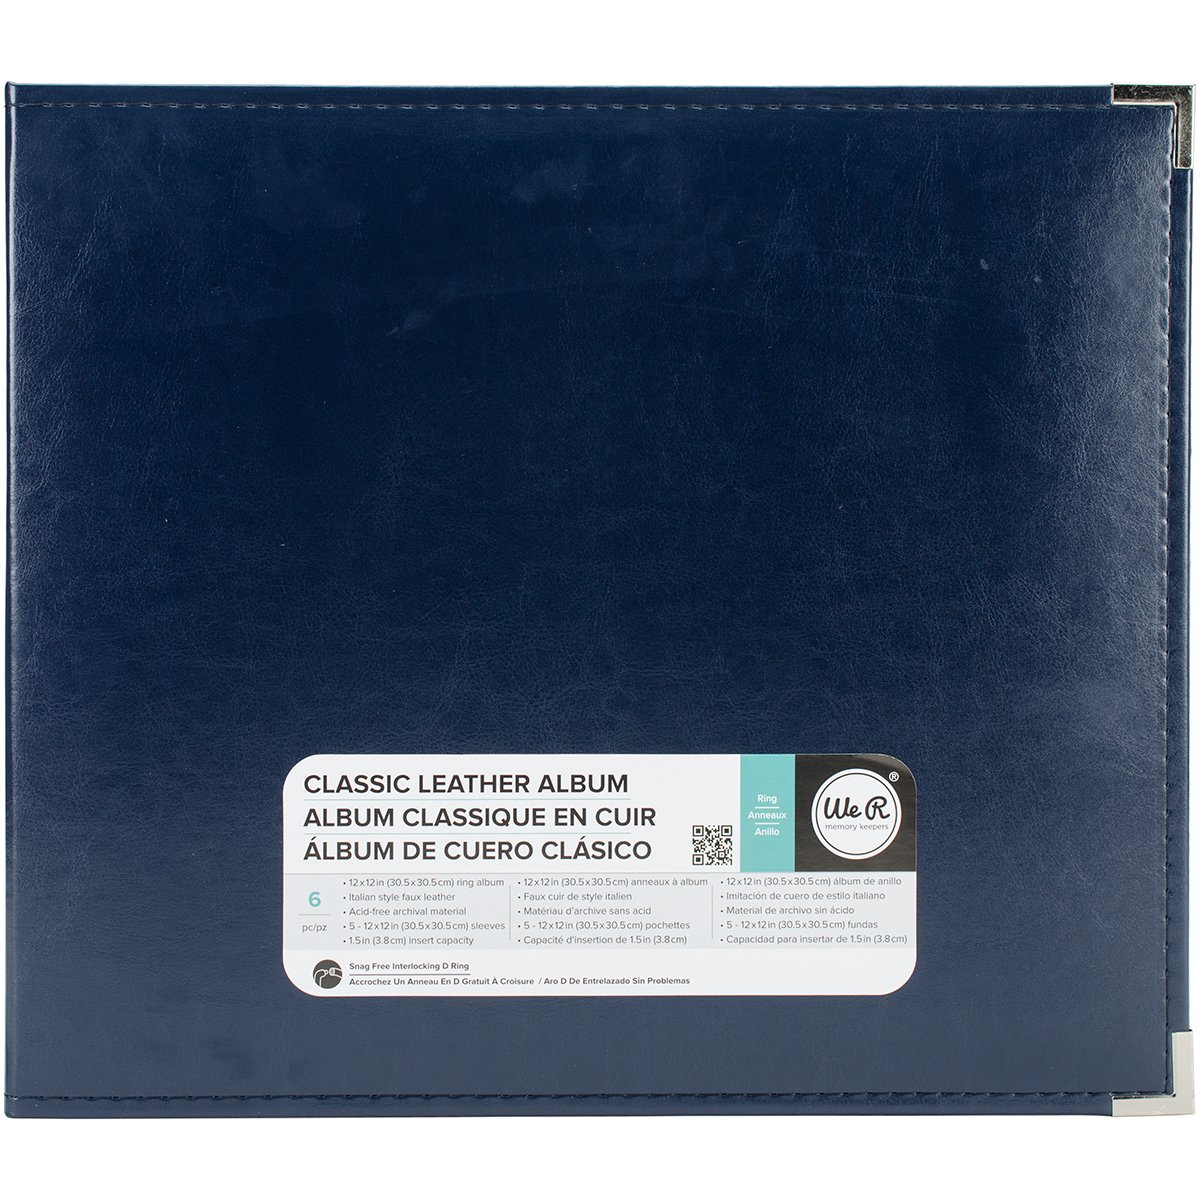 American Crafts 12 x 12-inch Classic Leather 3-Ring Album by We R Memory Keepers | Navy, Includes 5 Page Protectors